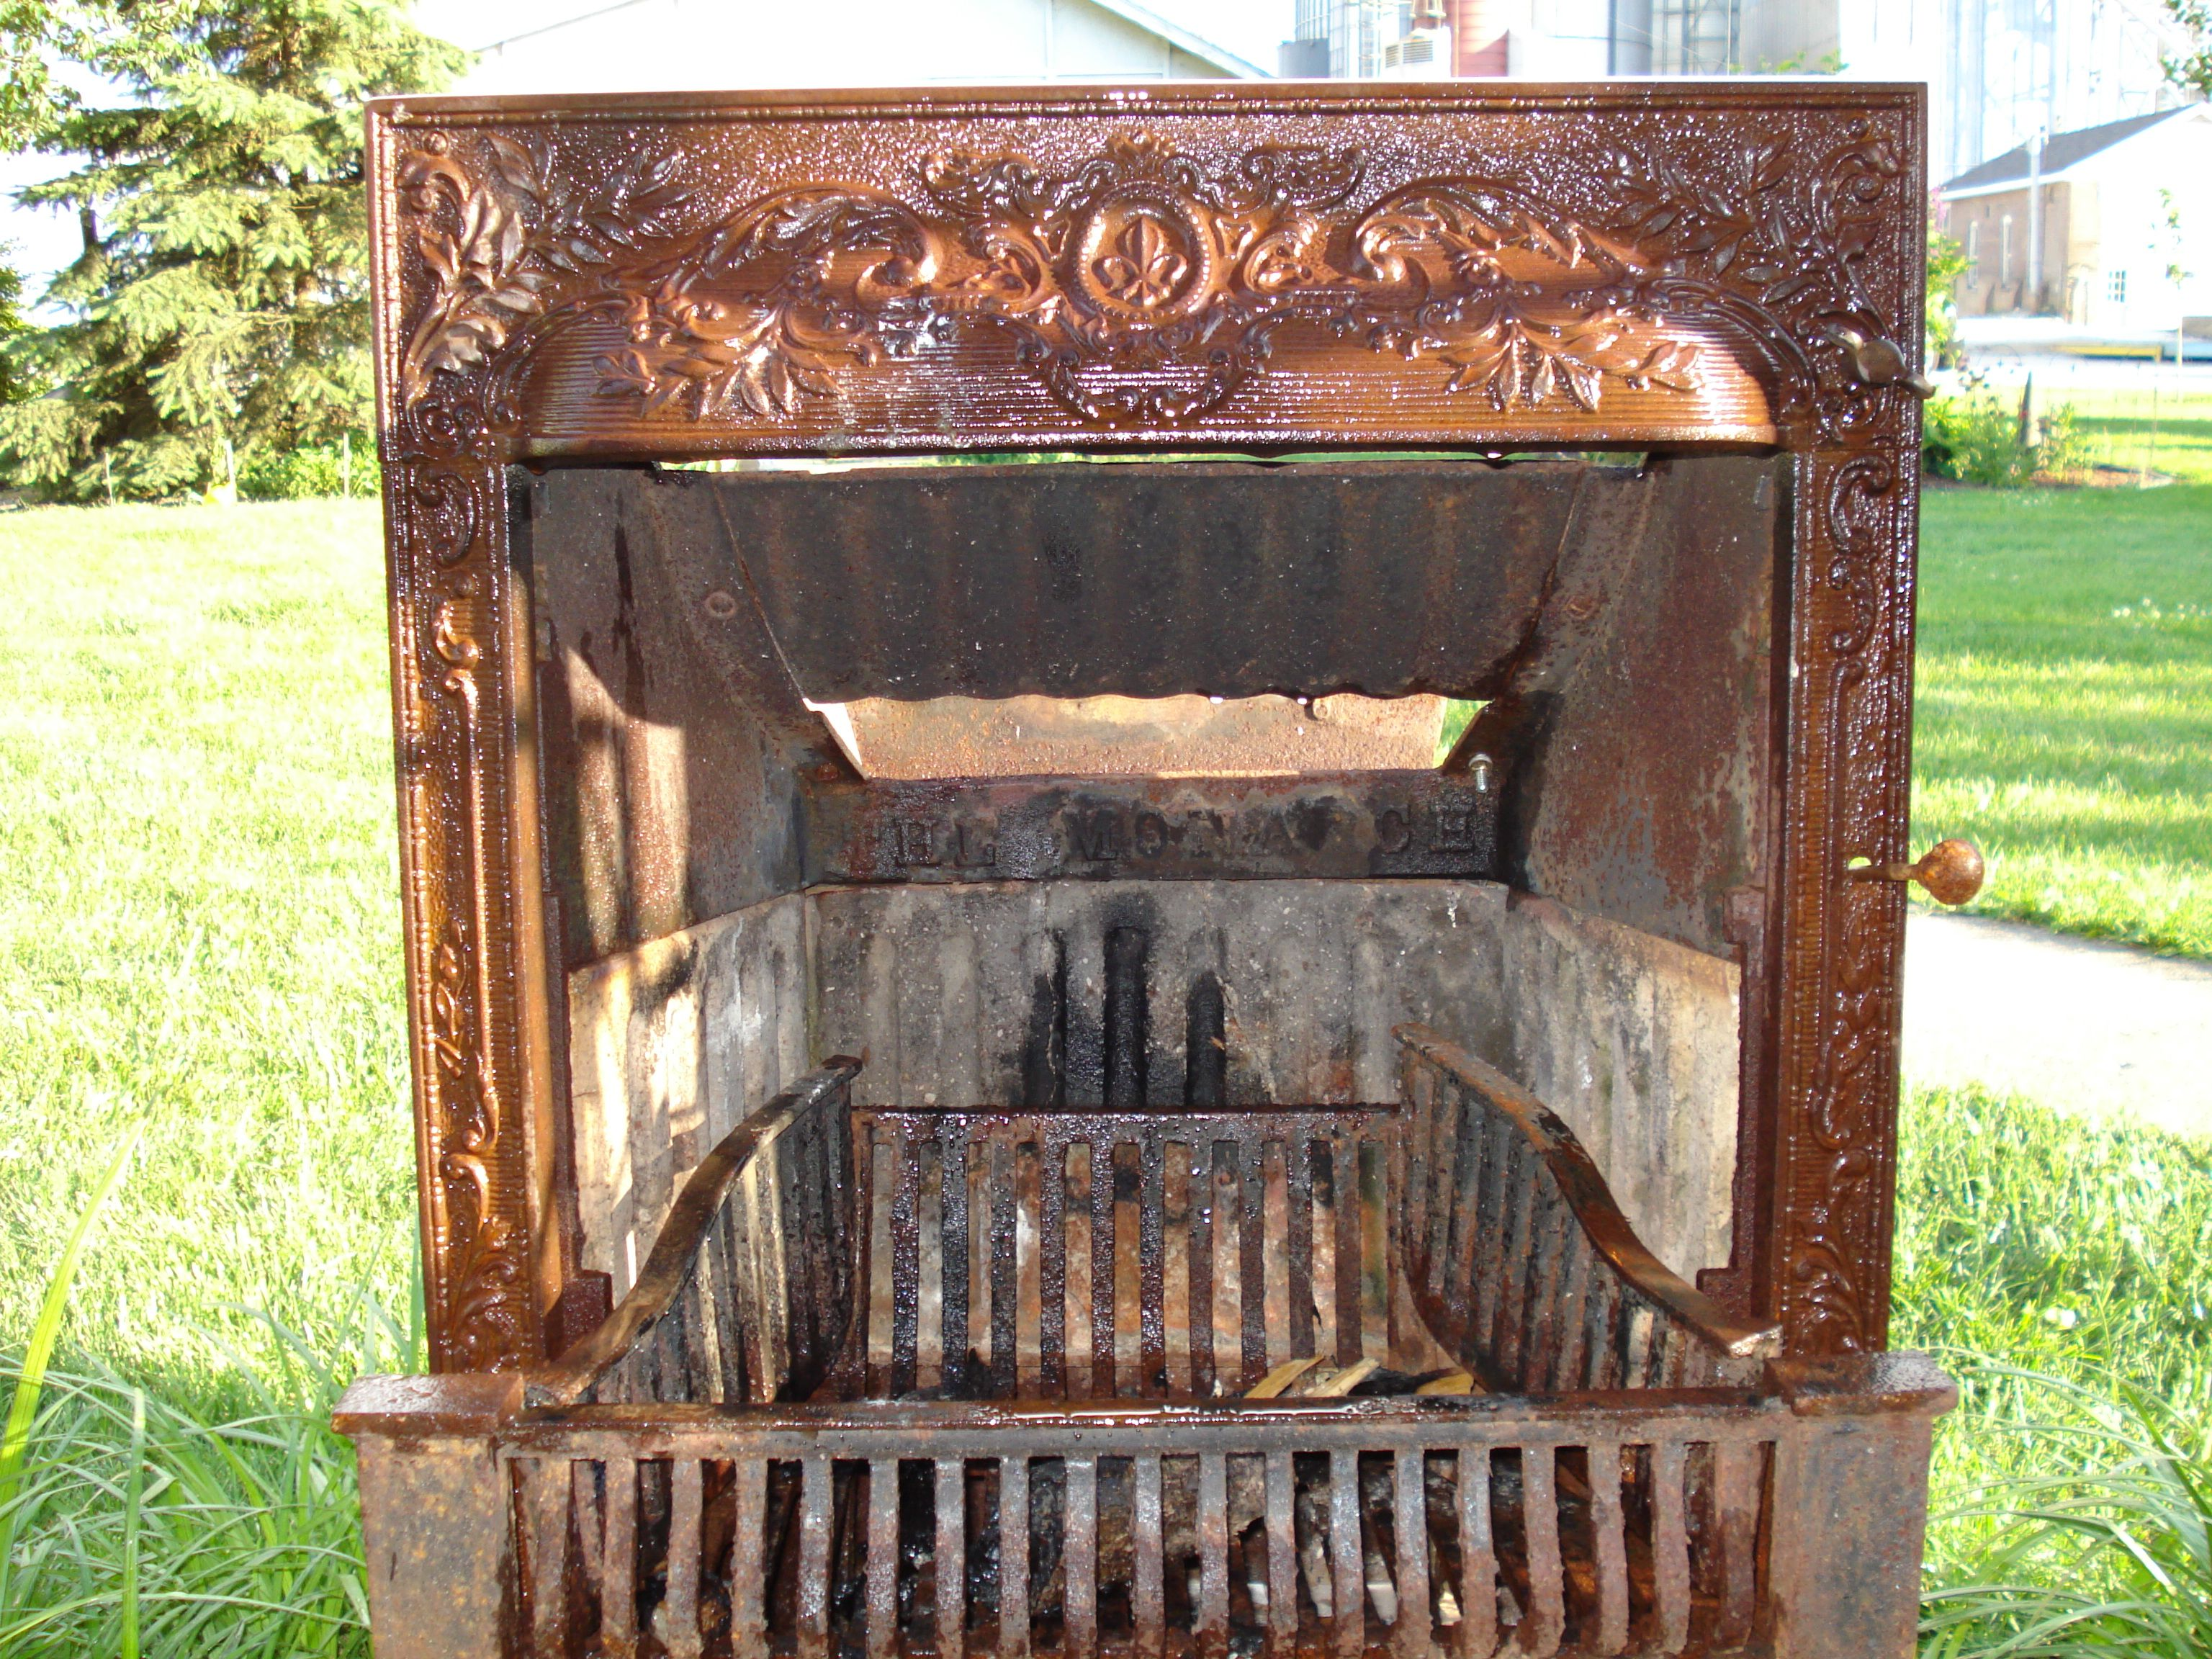 i would love to find an old fireplace insert to use as an outdoor